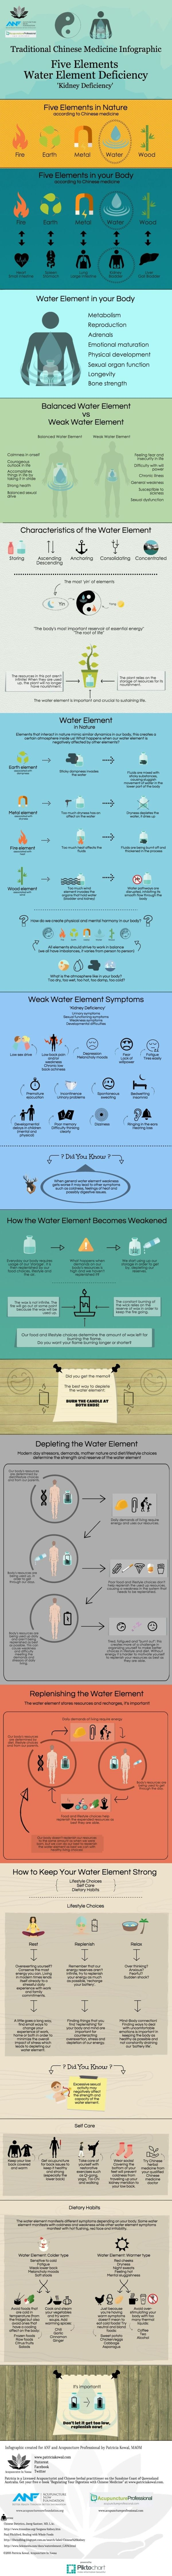 #Traditional #Chinese #medicine #infographic about the #water element! Share to educate others! Enjoy! by angelina